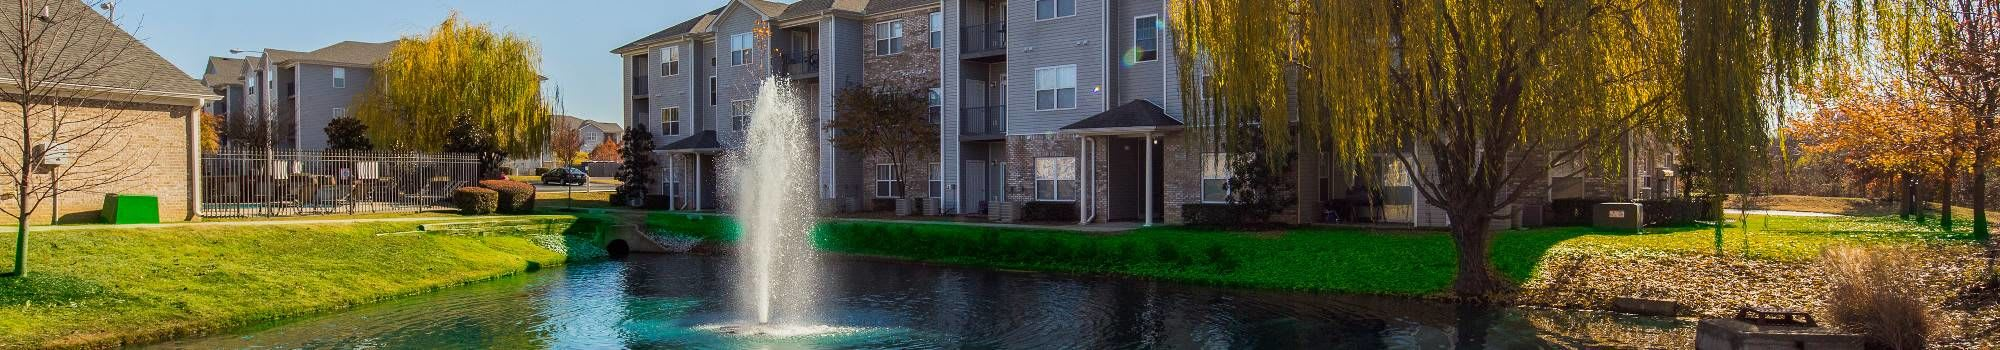 Crescent at Wolfchase offers a great neighborhood to its residents